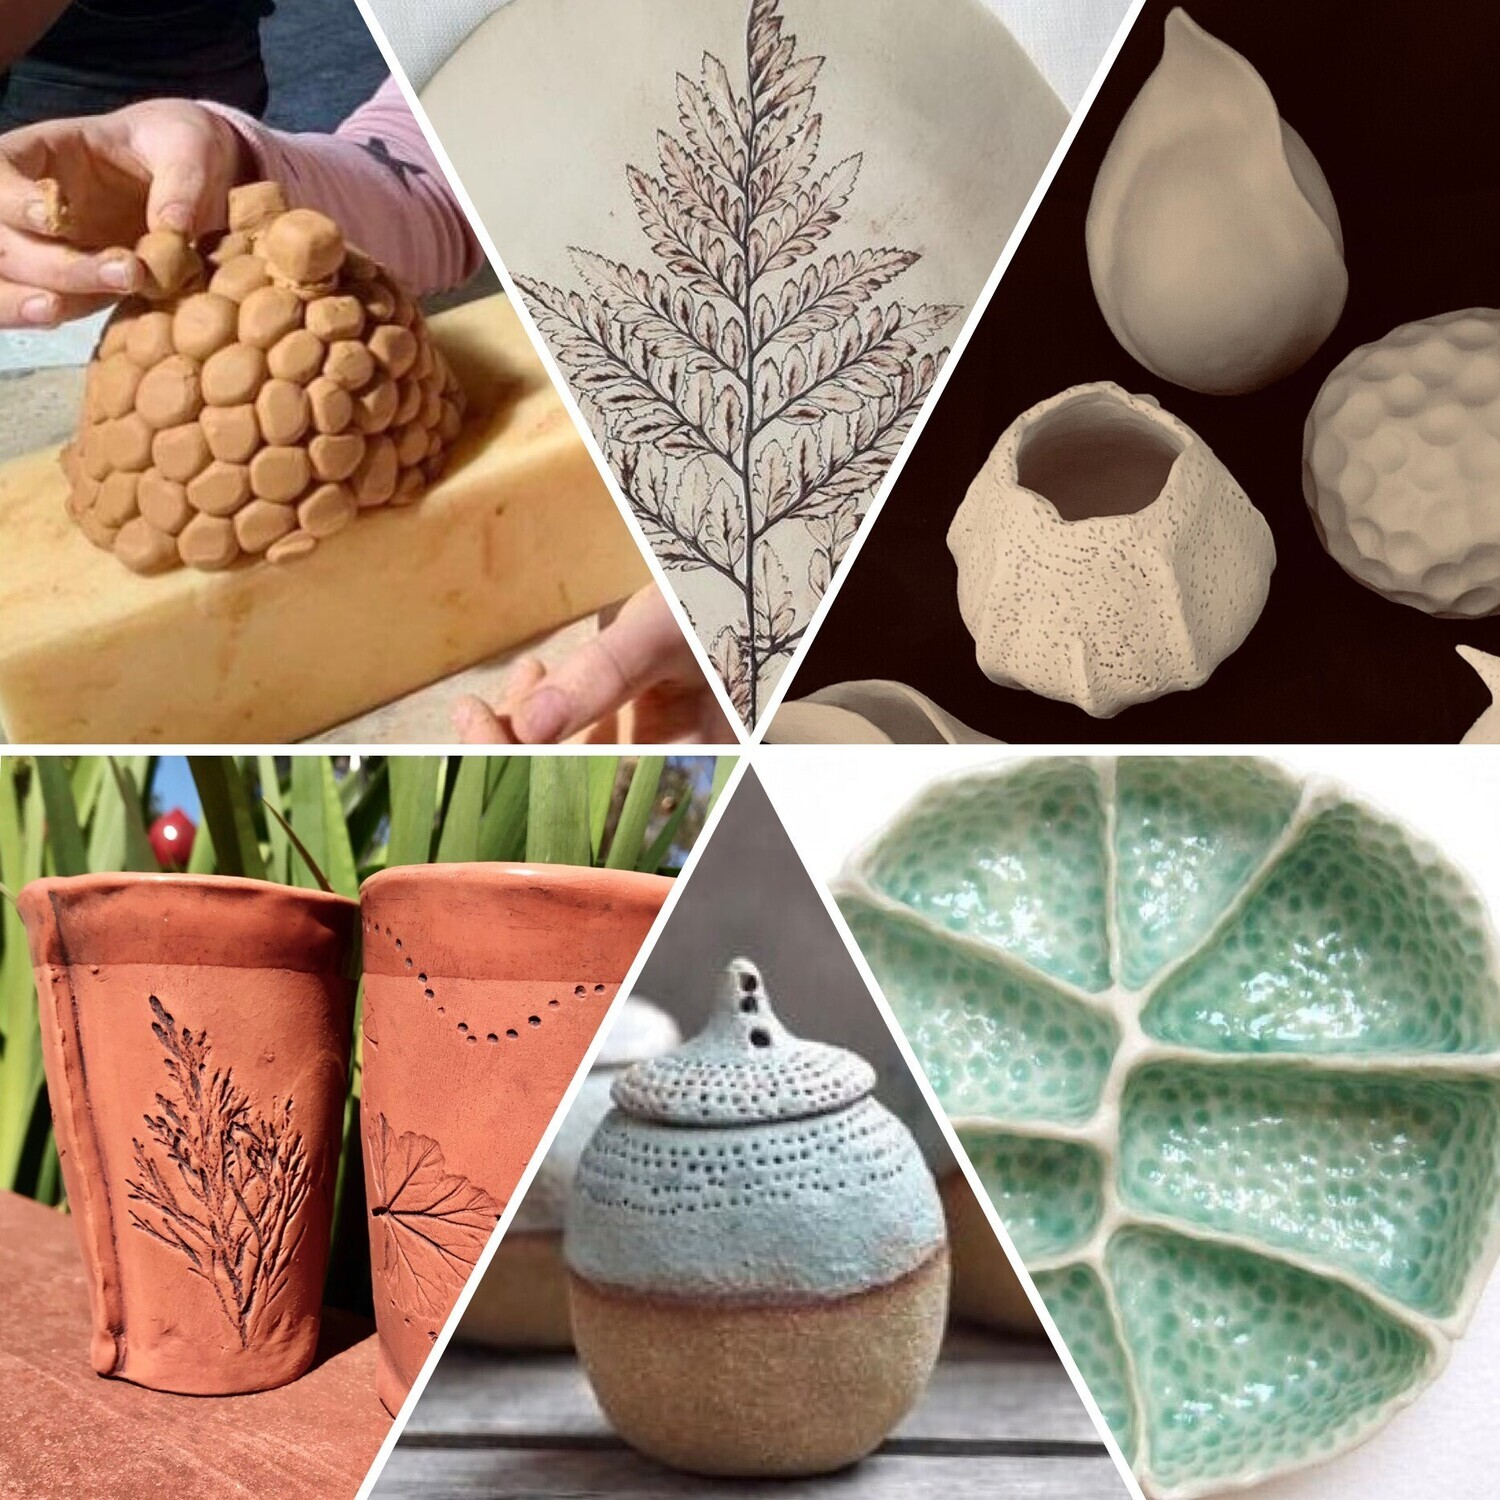 Hand Building Pottery Workshop - 26th June 2-4pm